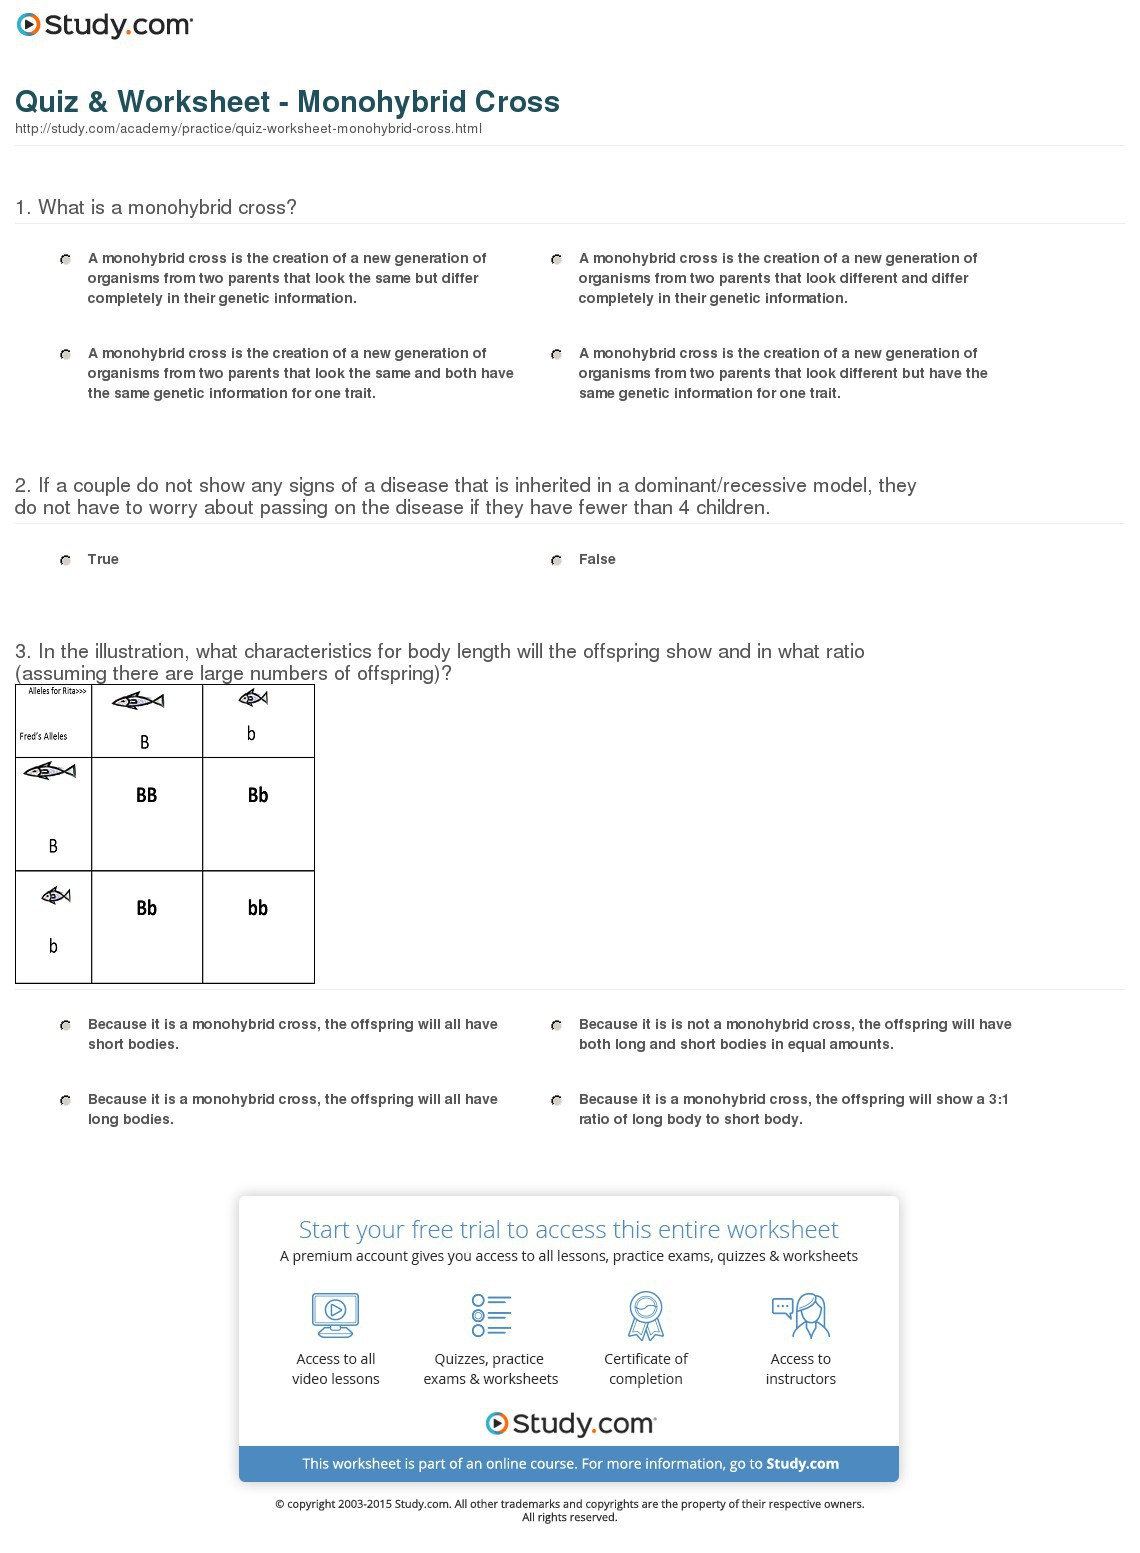 monohybrid cross worksheet - Images for monohybrid cross worksheet